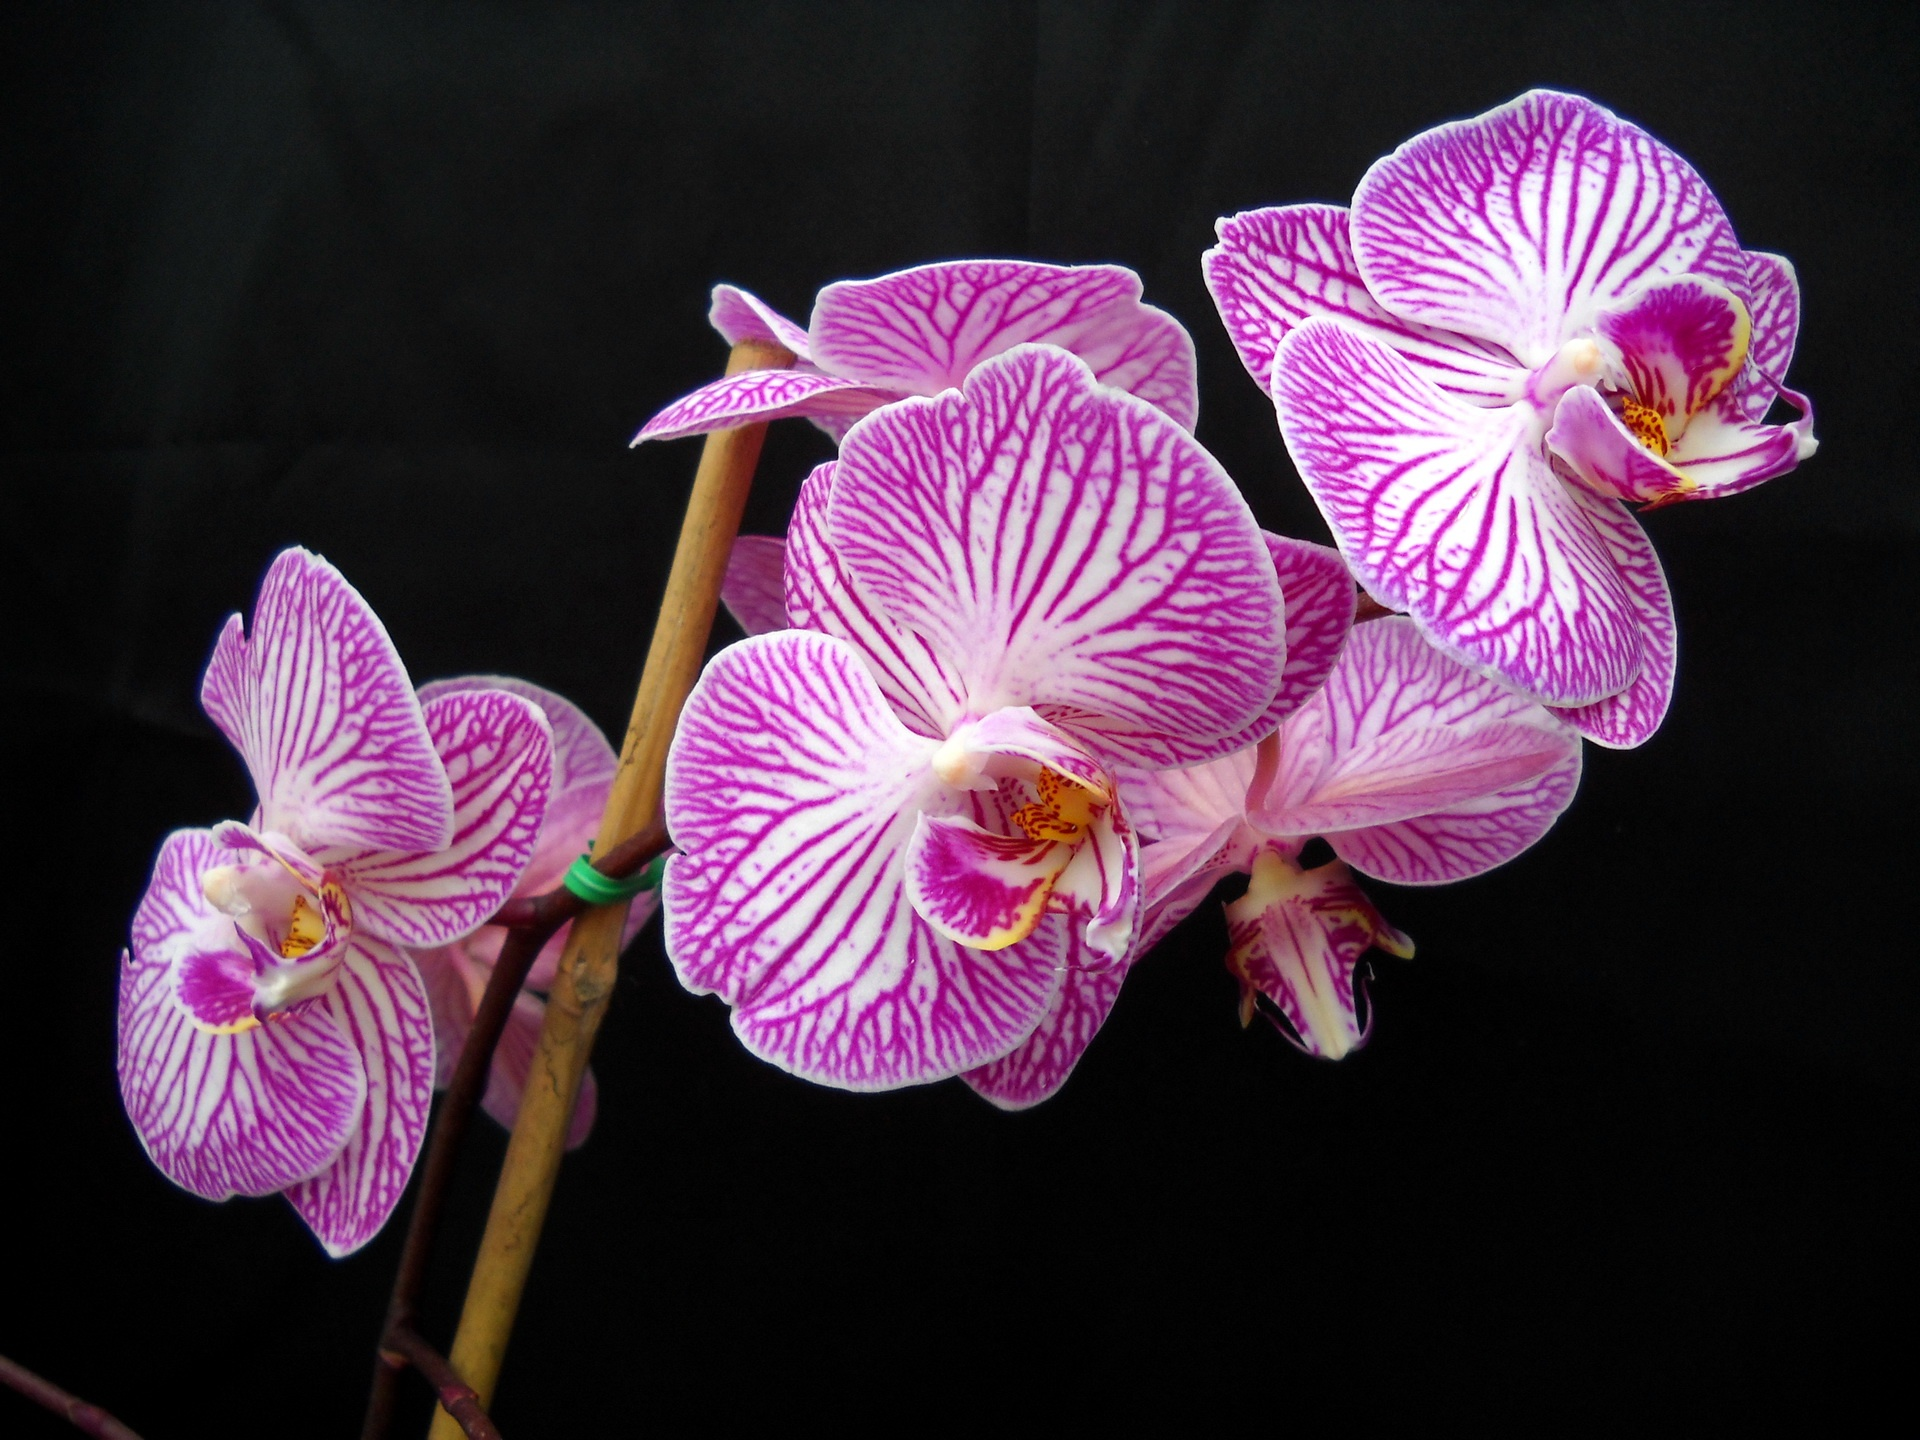 Purple Phalaenopsis close photography wallpaper - 1920x1440